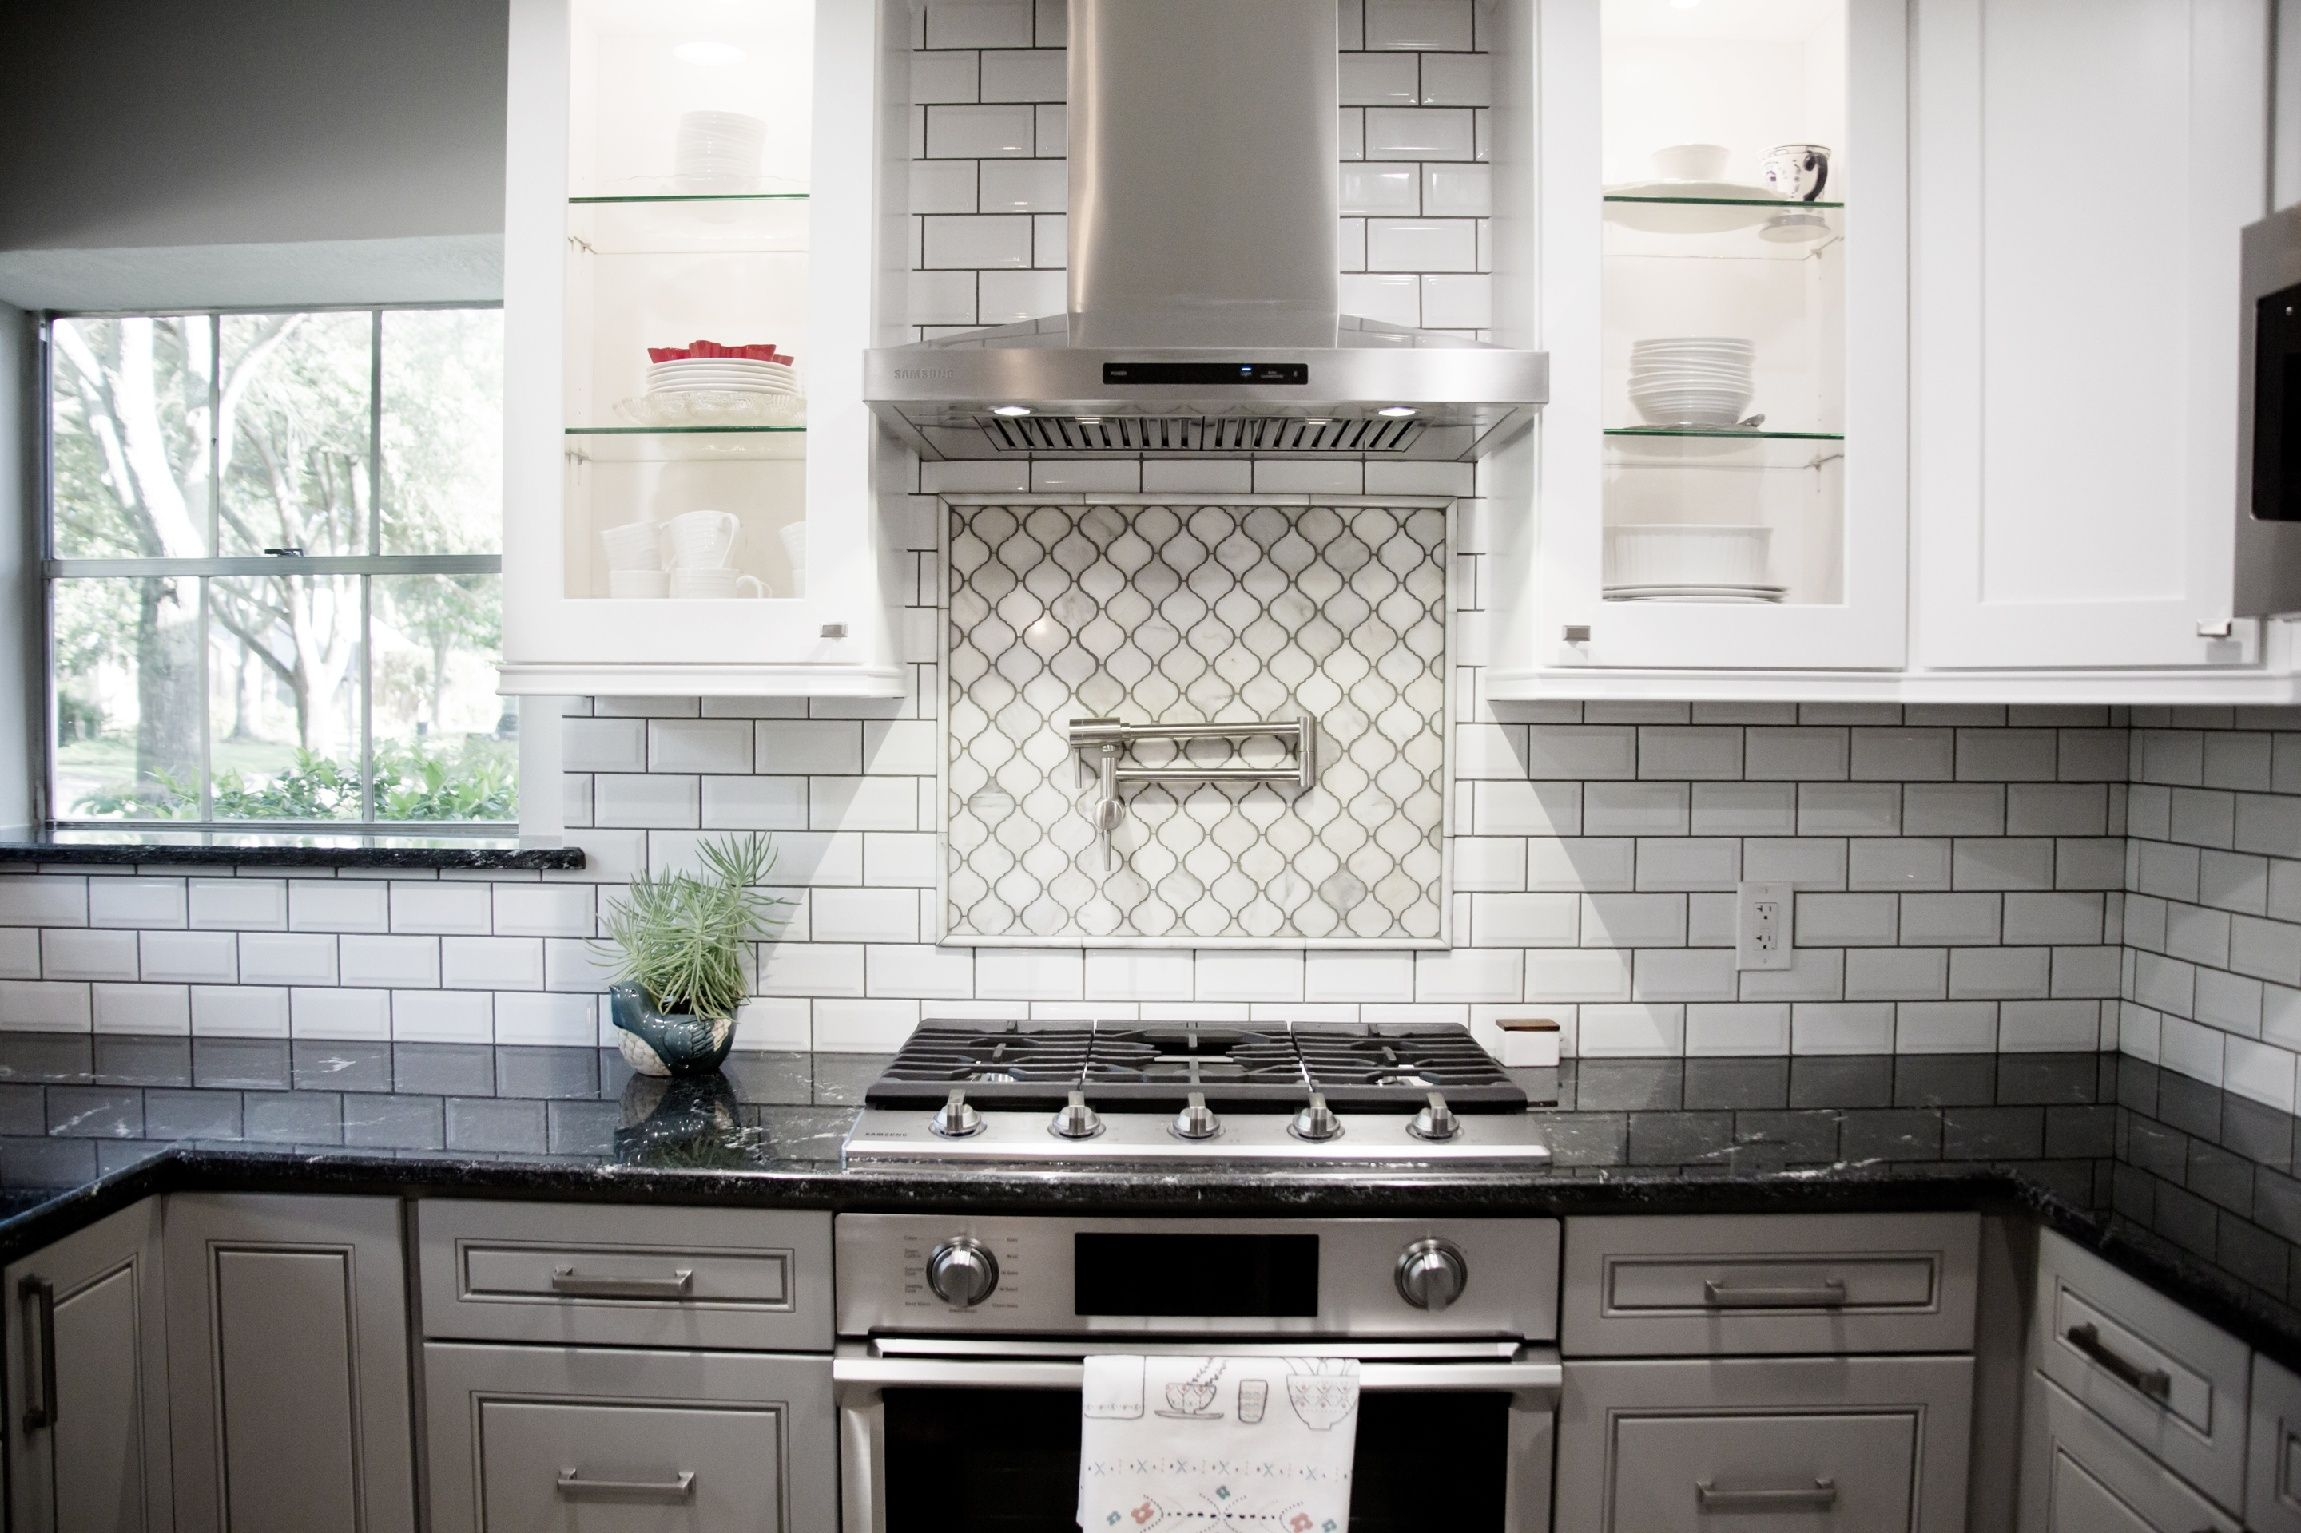 Ordinaire Embrace Contrast For A Striking Design Statement By Incorporating A Clean  White Backsplash, Intricate Mosaic